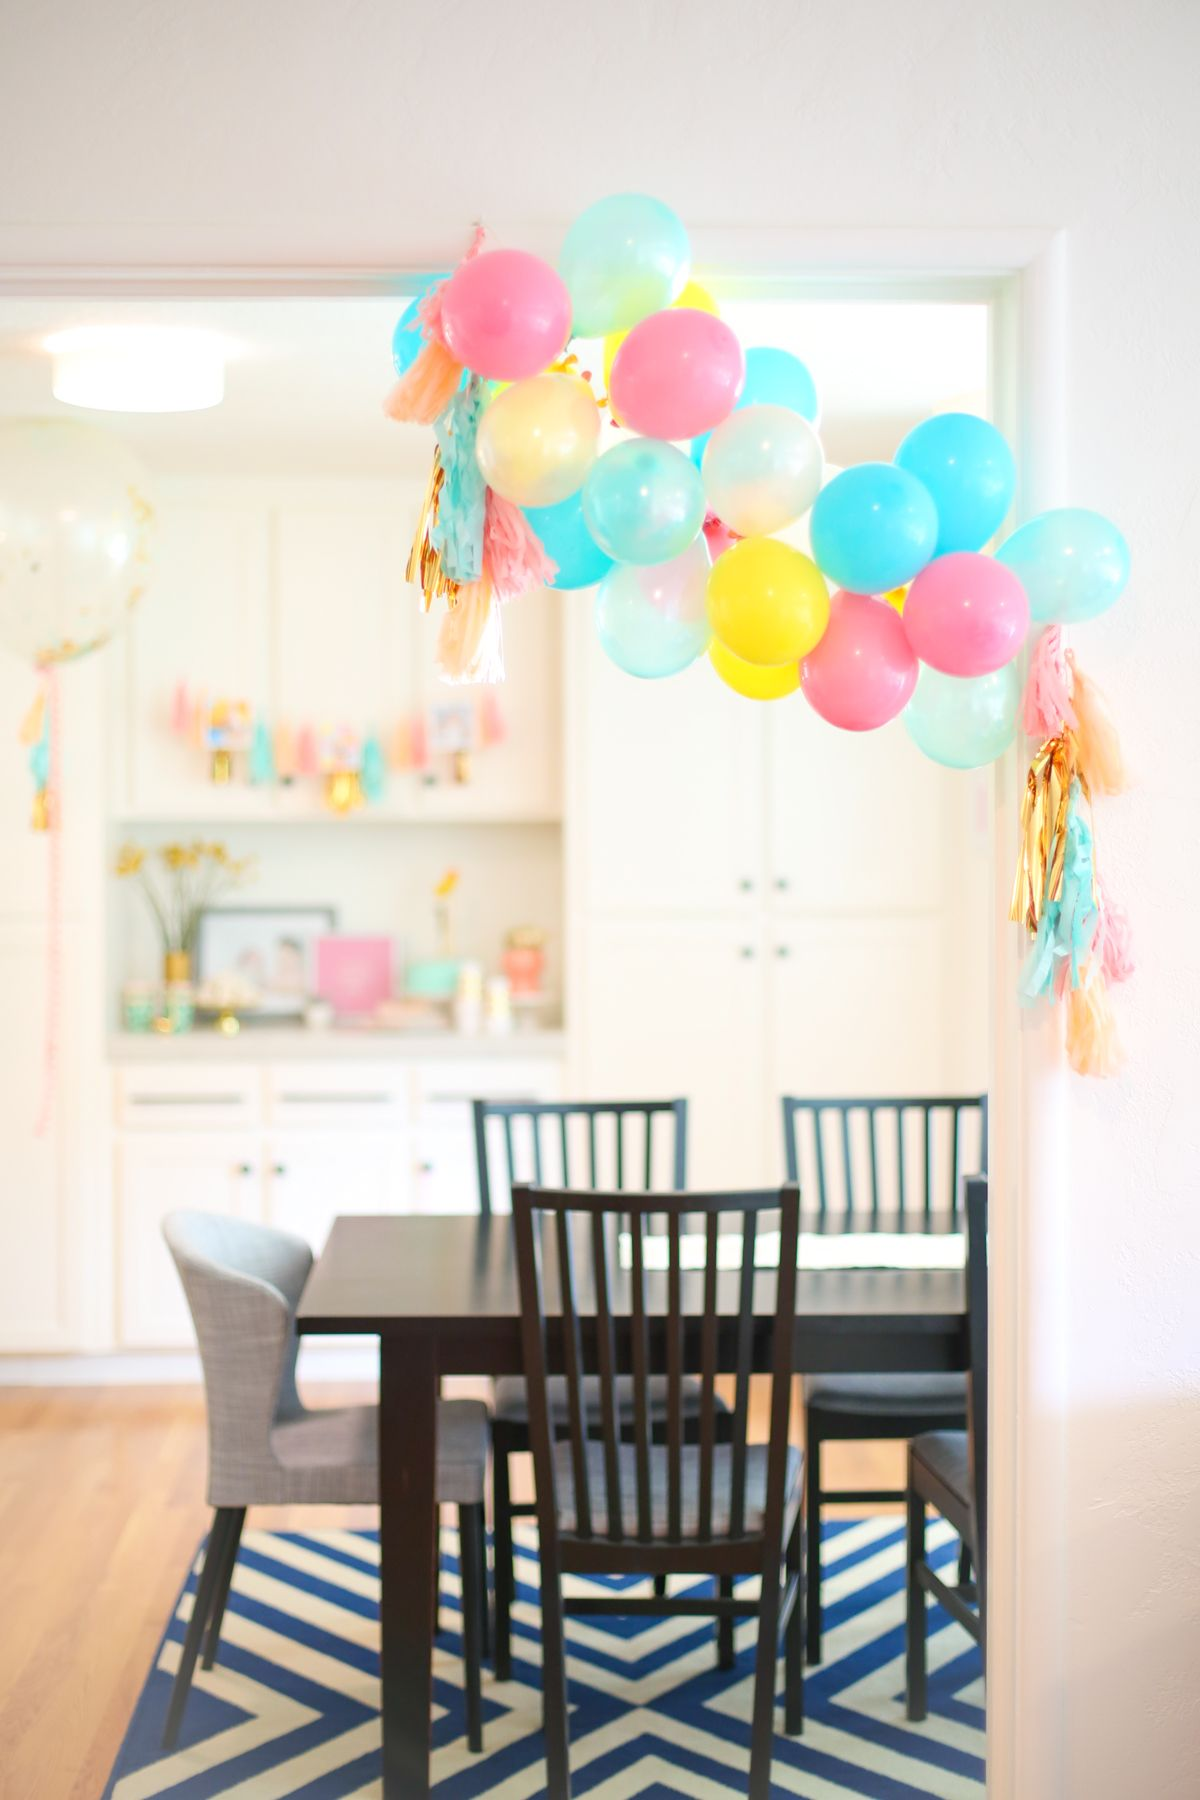 How to Make a Balloon Garland for a Birthday Party | Balloon garland ...